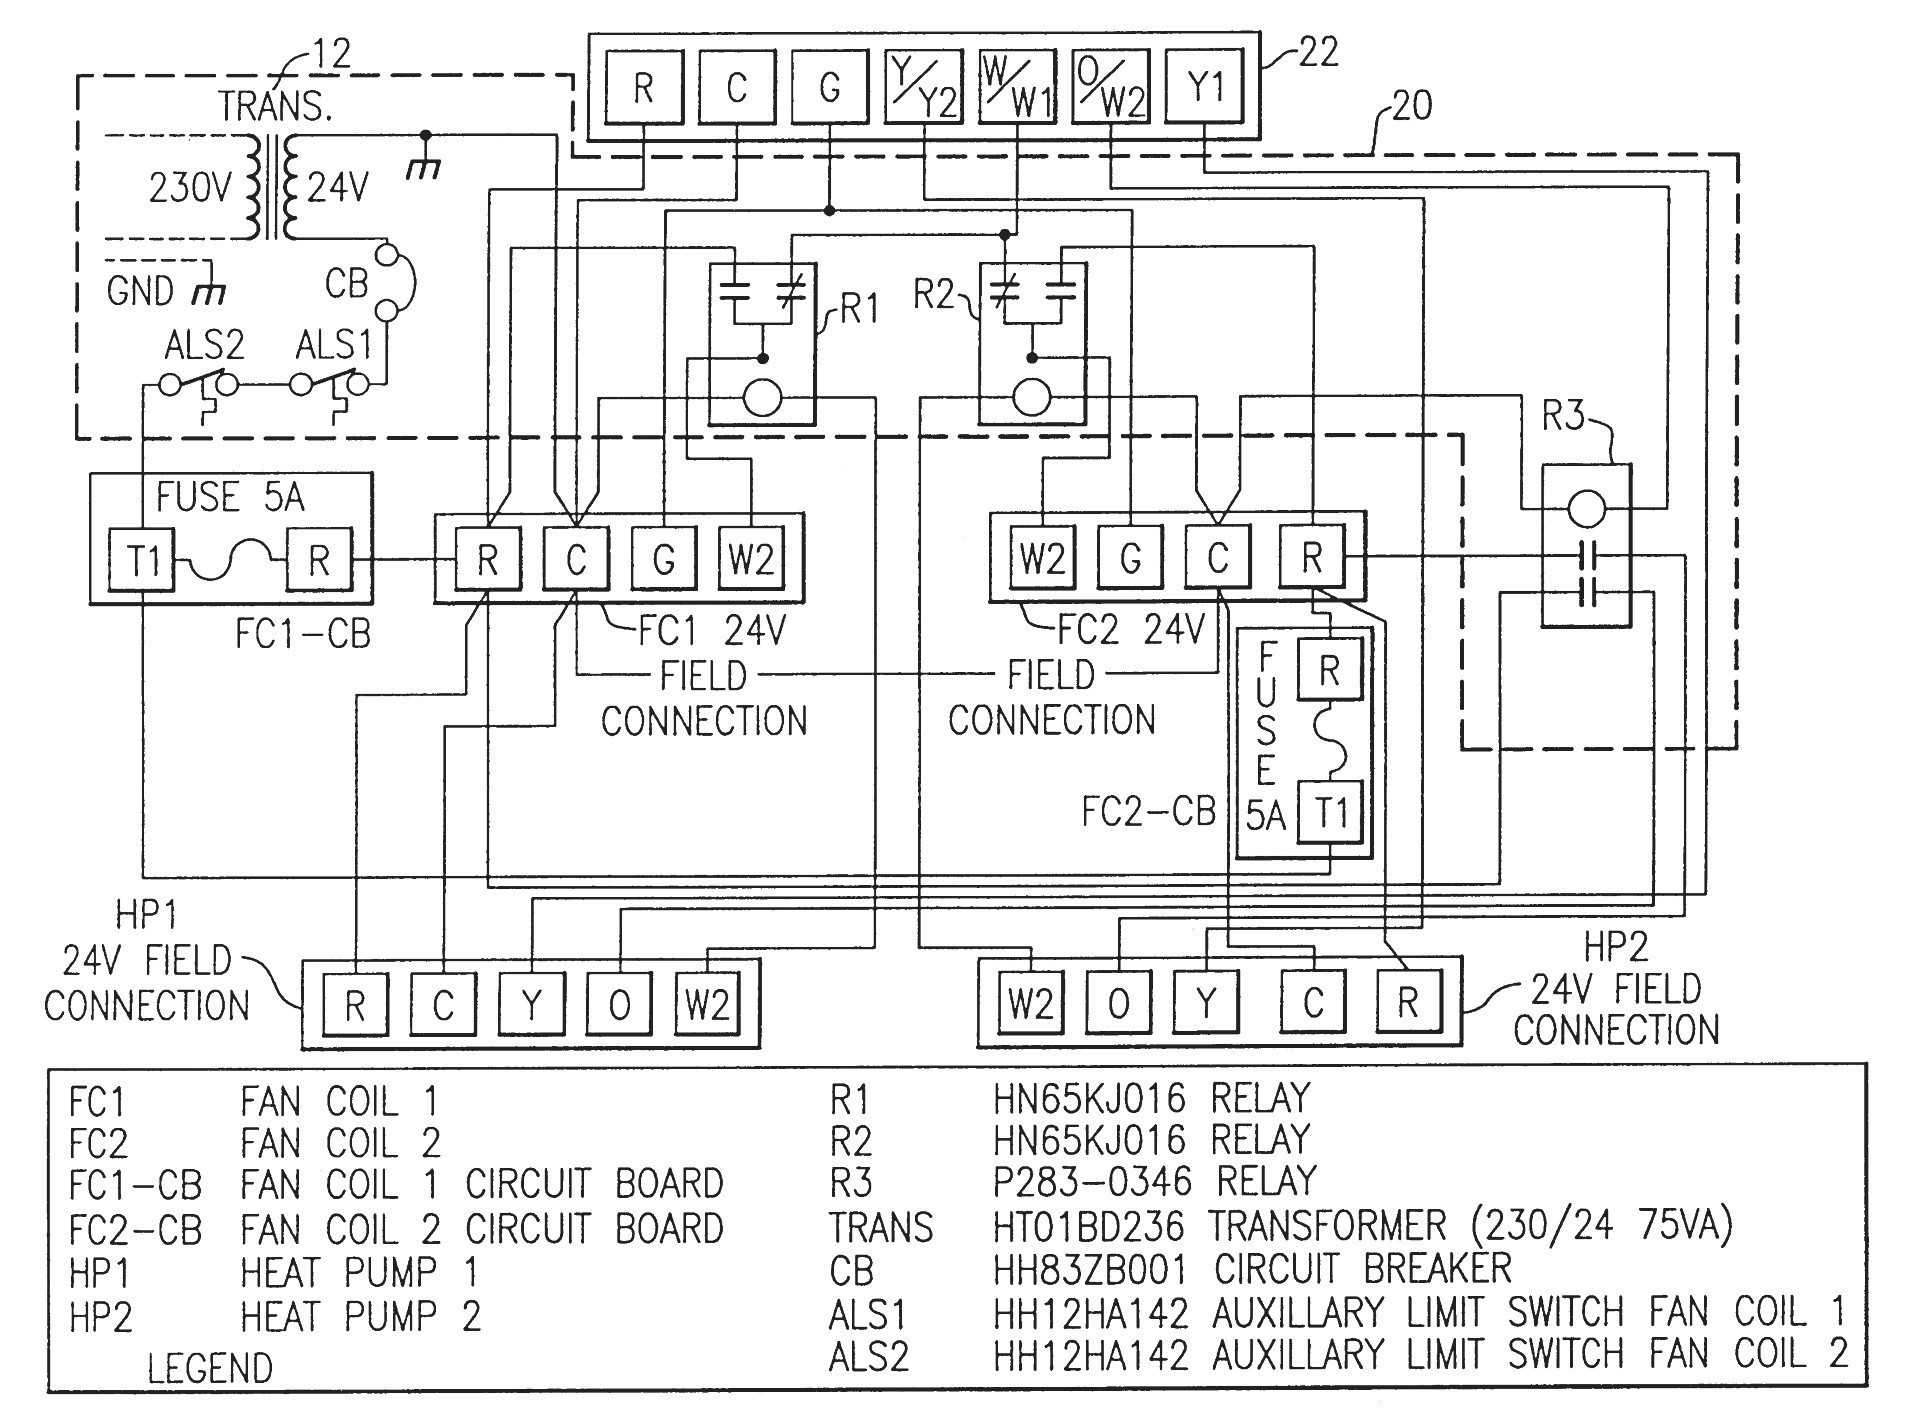 First pany Air Handler Wiring Diagram Unique Thermostat Wiring Diagram New Rheem Air Handler Schematic Showy Ruud